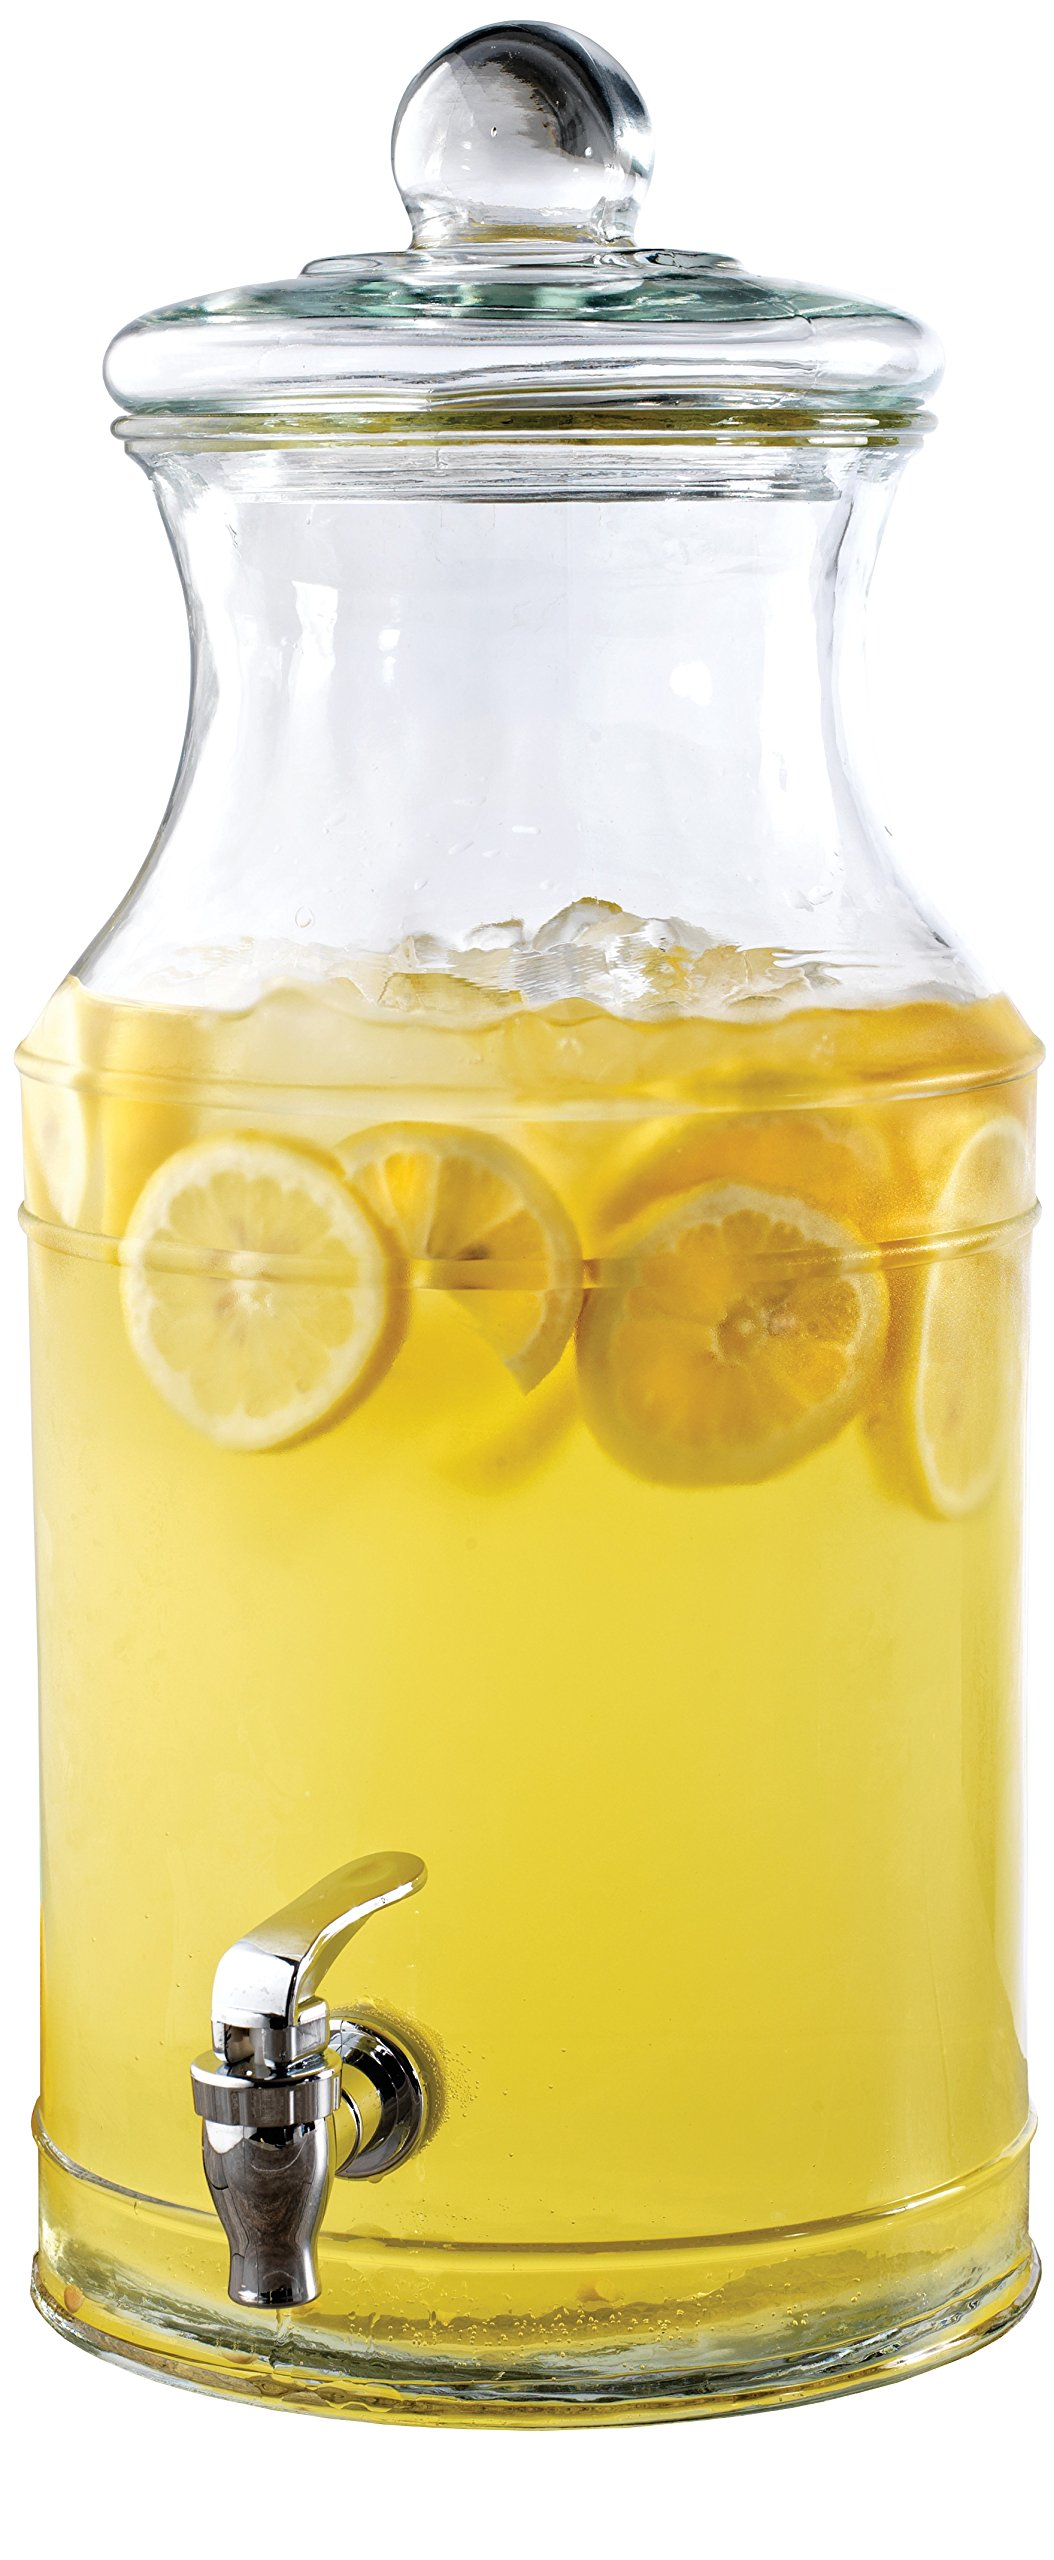 Circleware 66978 Sun Tea Jar Beverage Dispenser and Glass Lid, Party Entertainment Home & Kitchen Glassware Water Pitcher for Juice, Beer, Kombucha & Cold Drinks, Huge 2.1 Gallon, Valley Farm